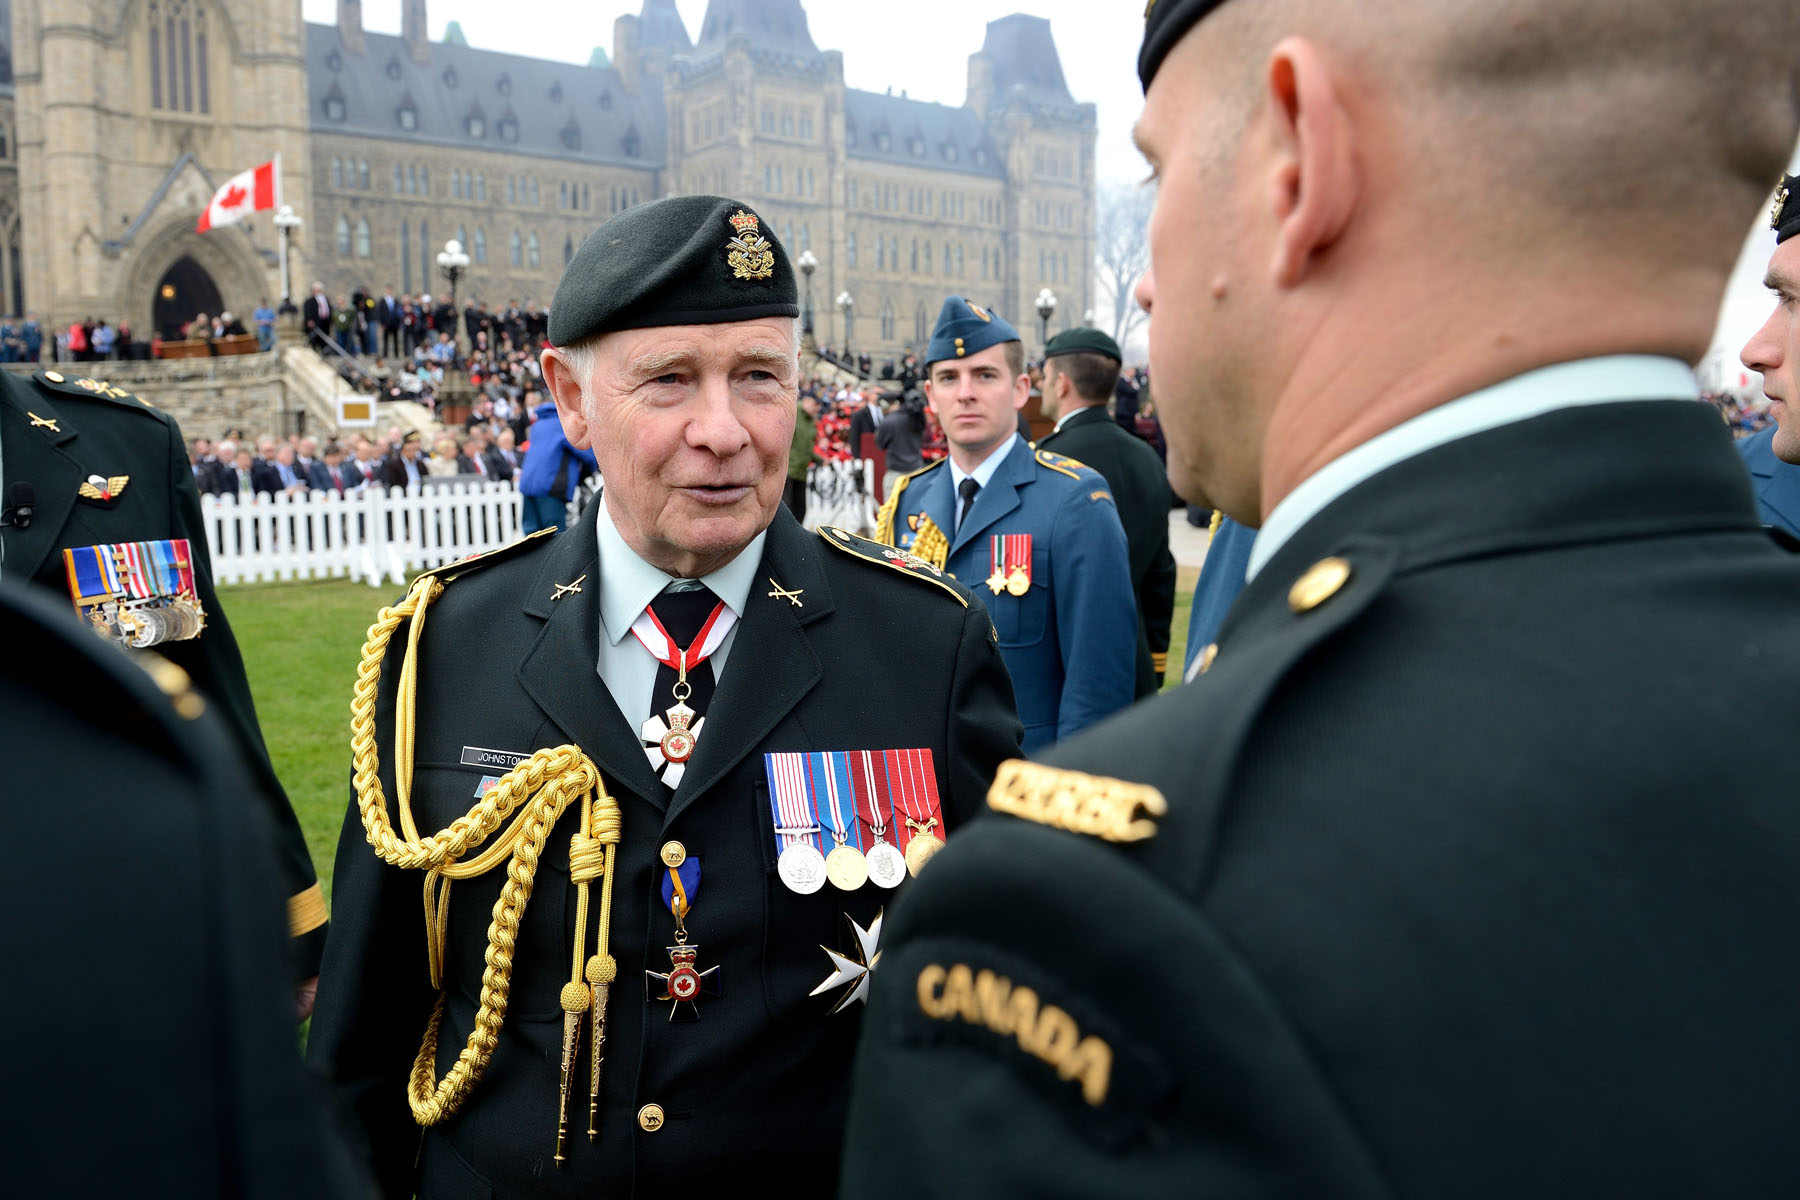 During the inspection, the Governor General and Commander-in-Chief spoke with some of the Canadian Armed Forces Members.